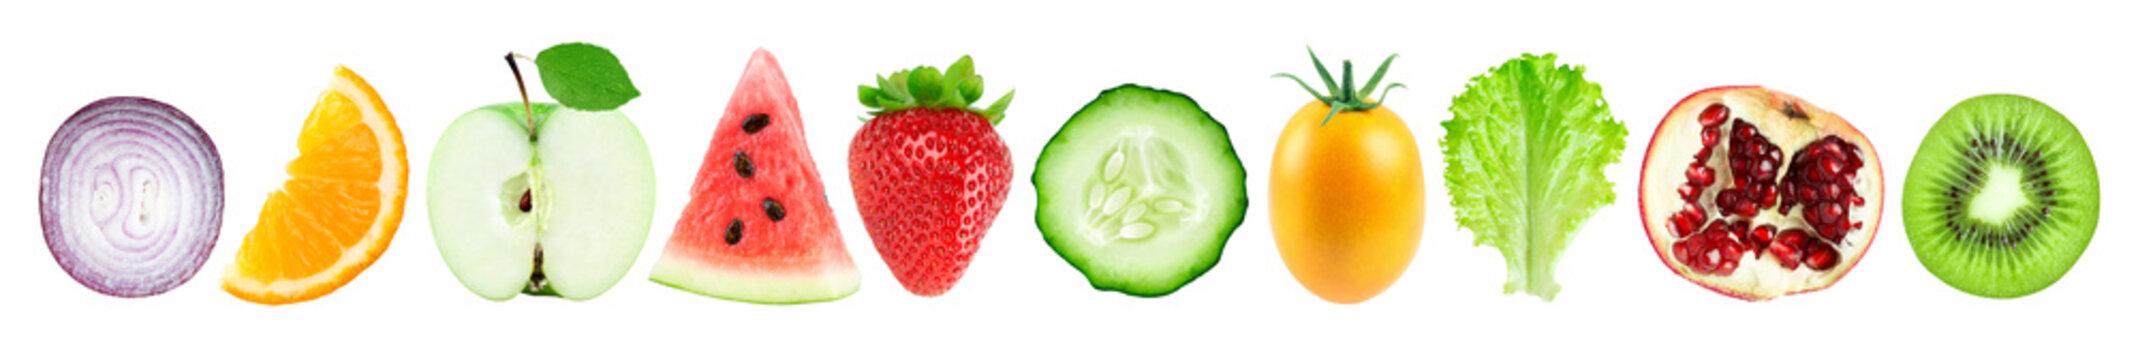 Collection of fruits and vegetables isolated on white background. Fresh sliced food